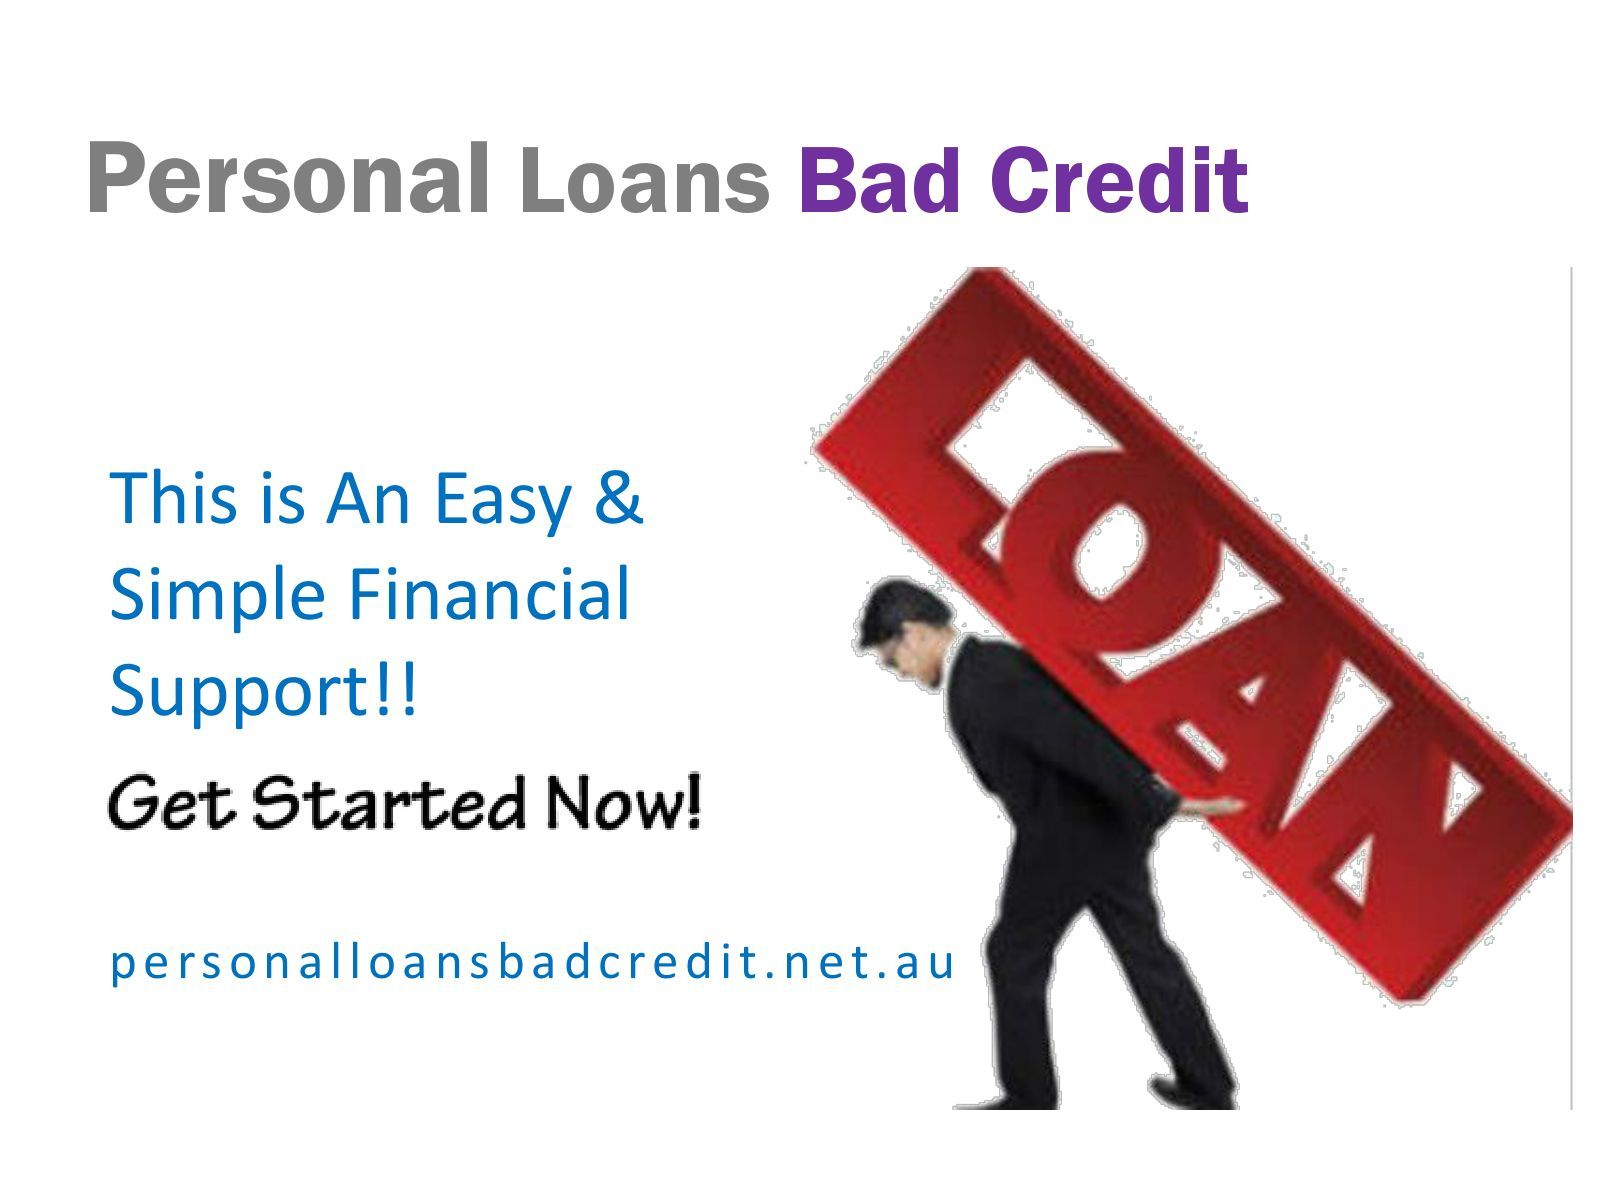 Small Cash Loans Australia Available Instant Loan Alternative For The Tough Times Payday Loans Instant Loans Loans For Bad Credit